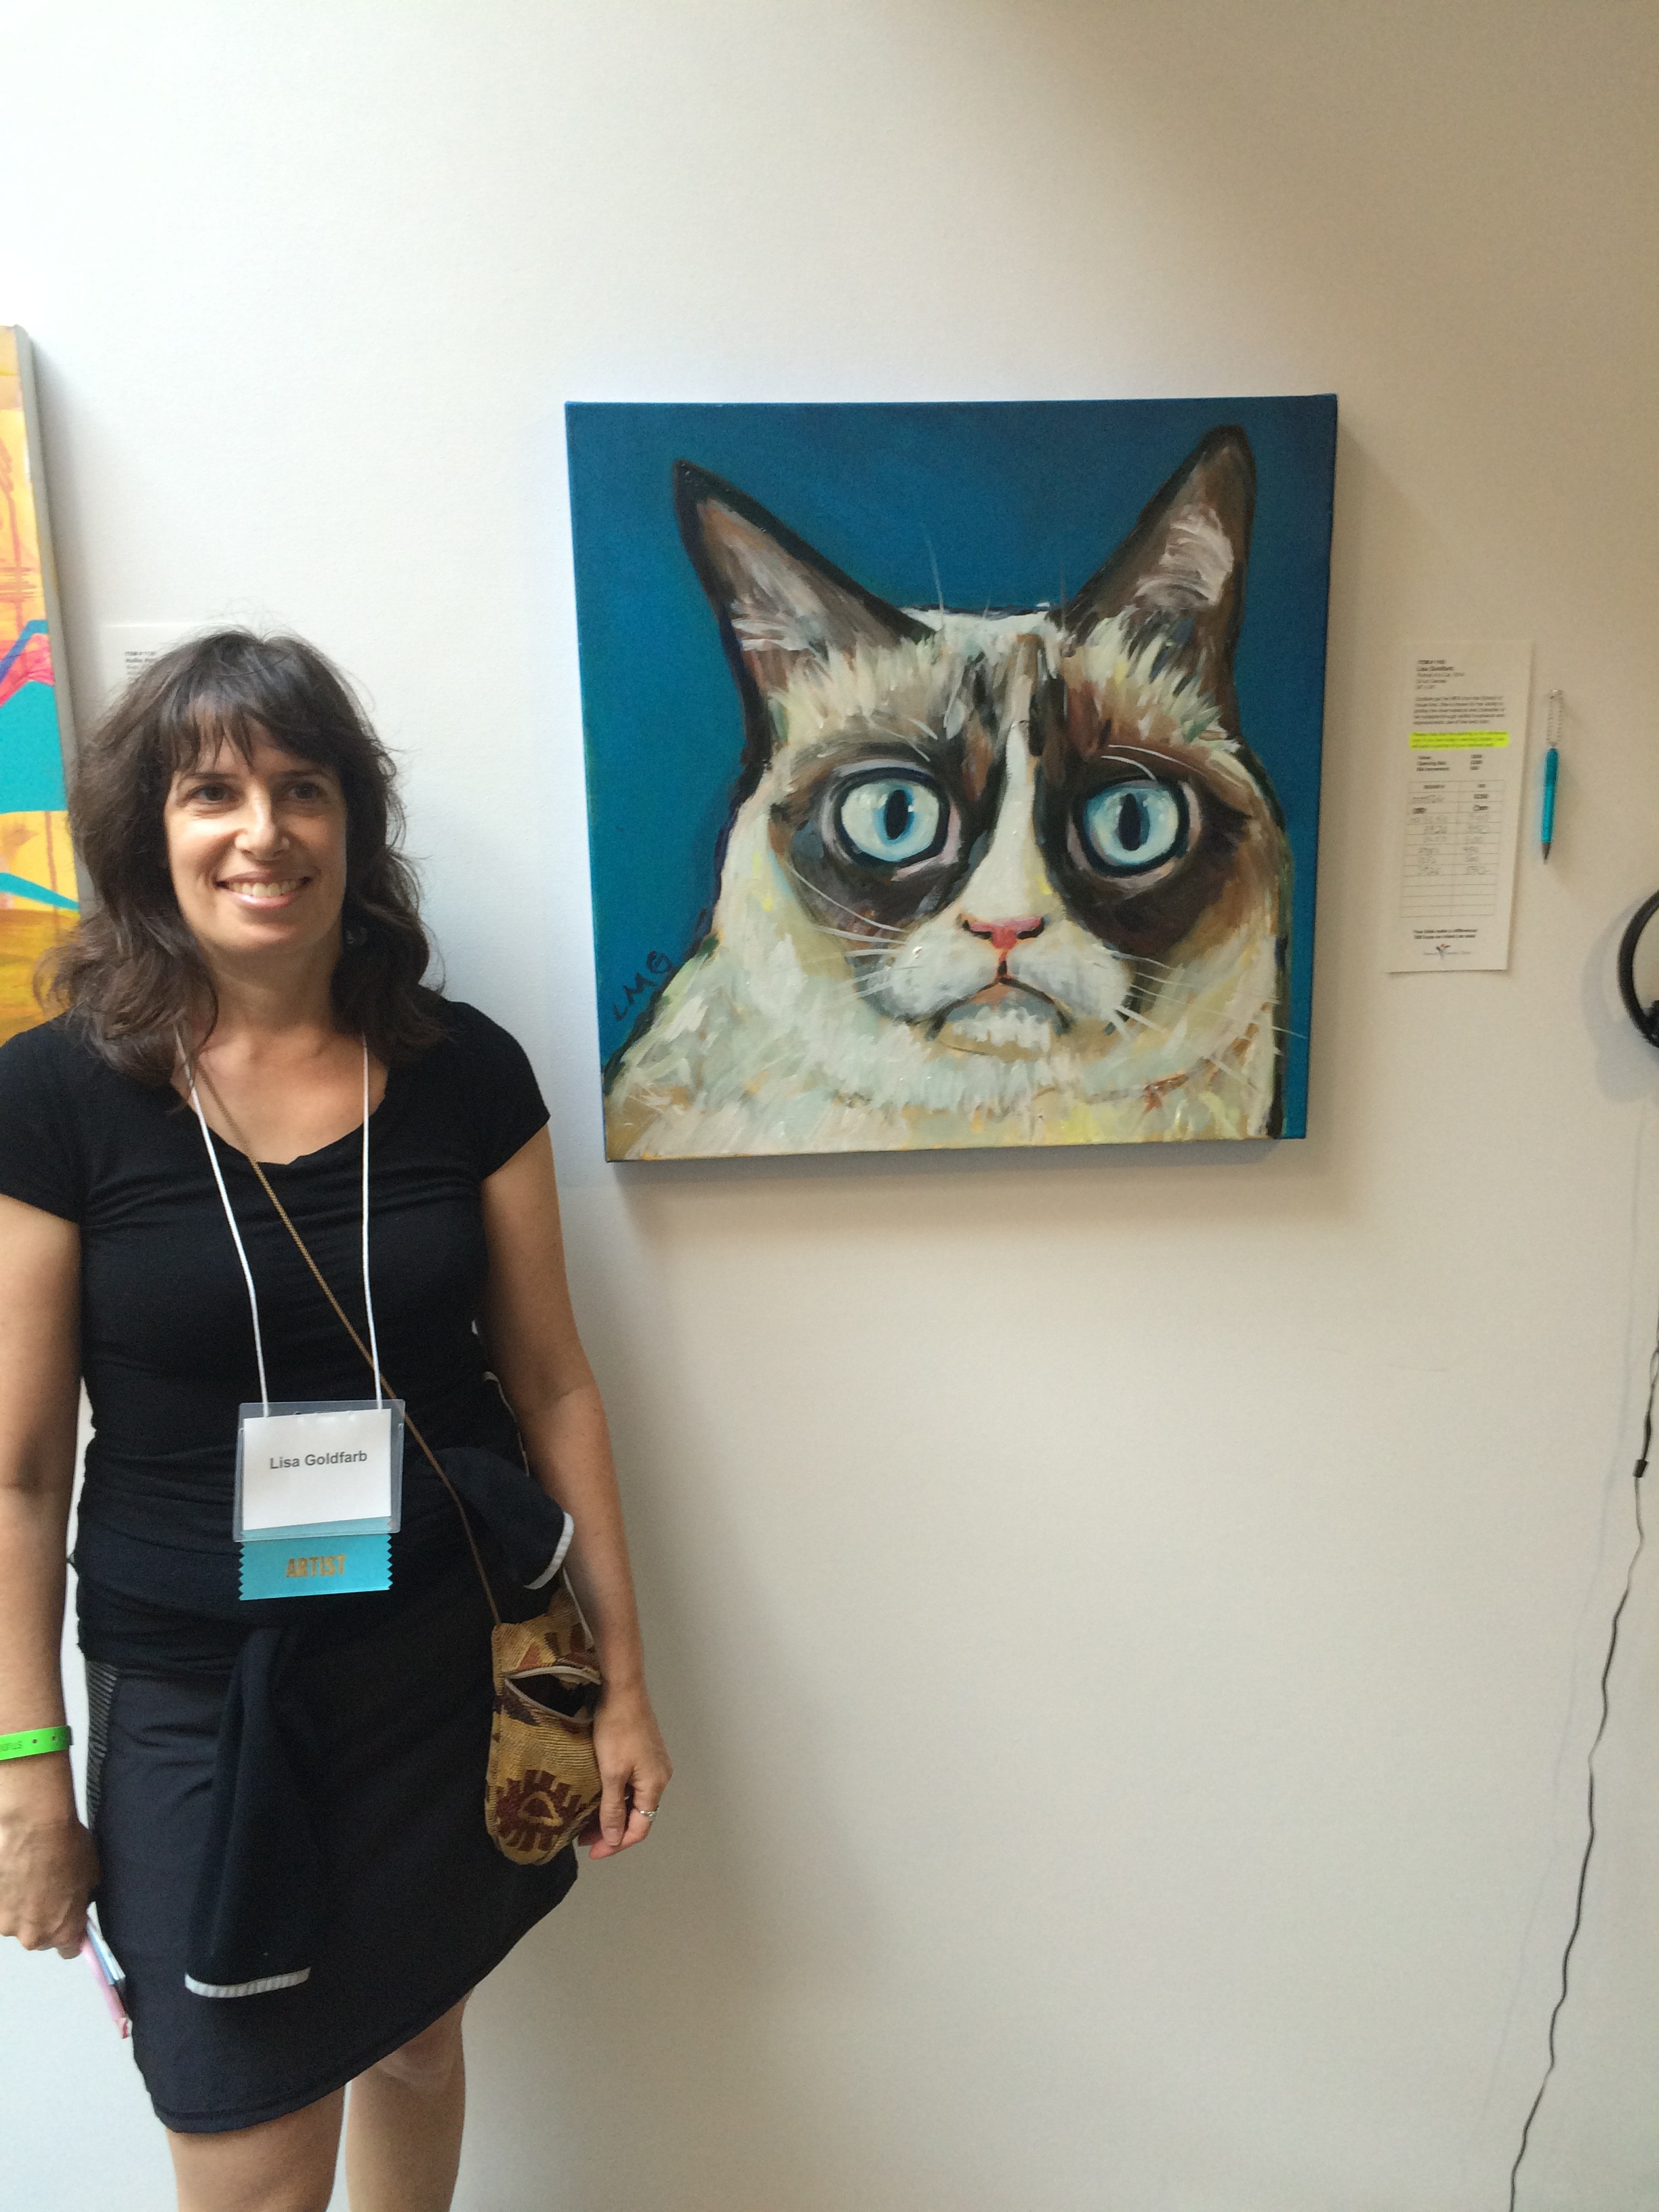 Lisa Goldfarb and her painting of Grumpy Cat at the Venice Family Clinic Art Auction